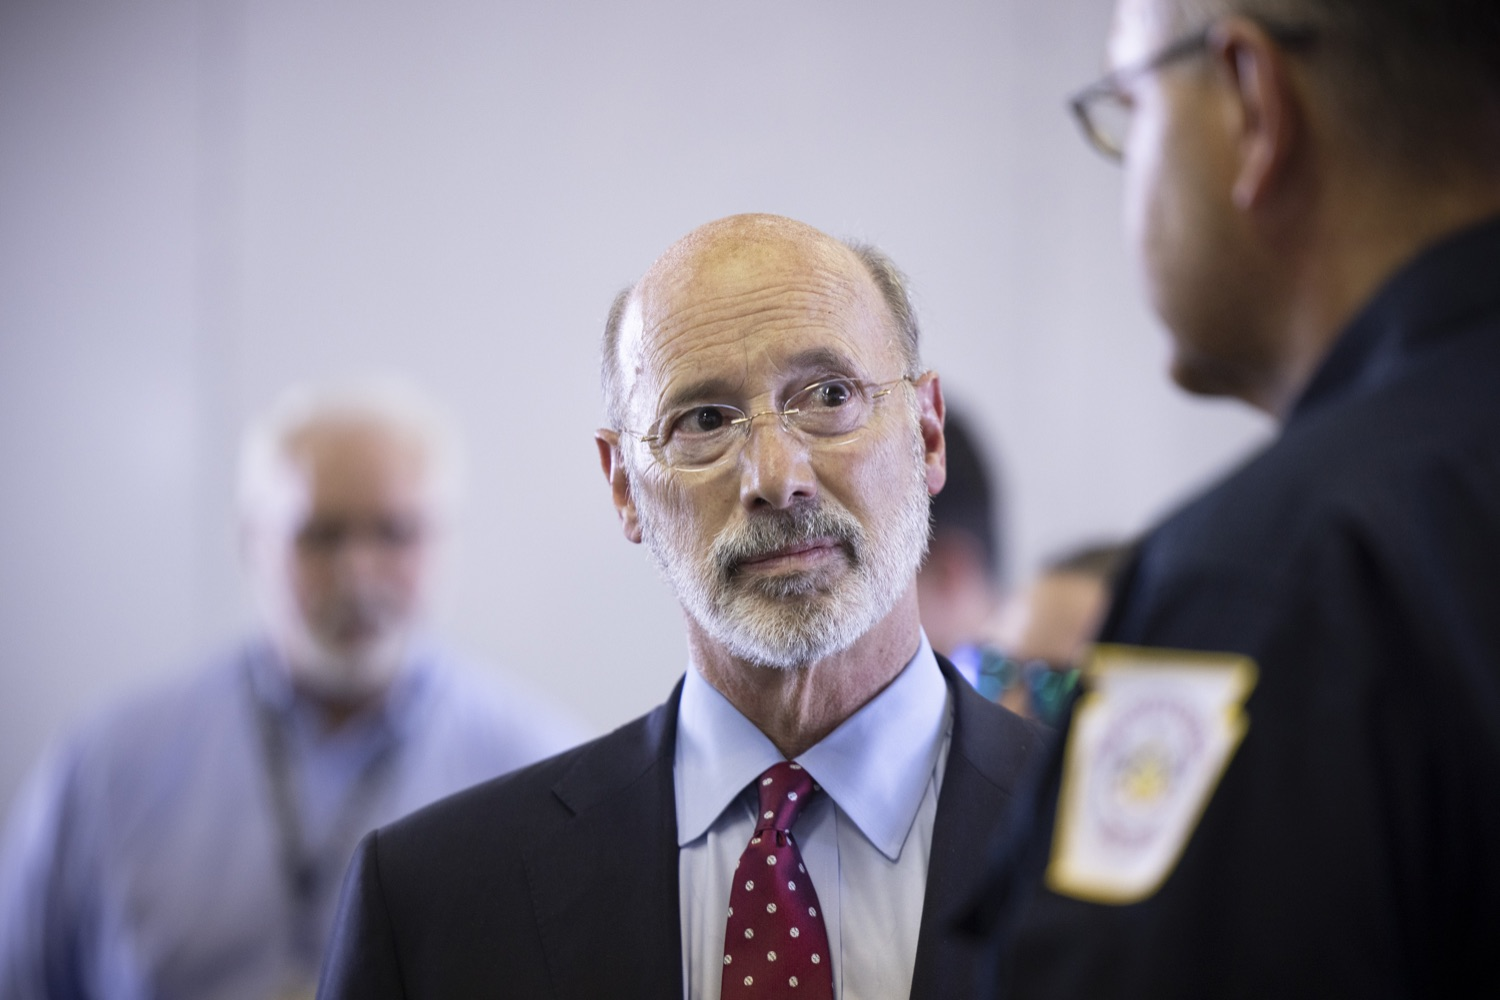 """<a href=""""https://filesource.wostreaming.net/commonwealthofpa/photo/18936_gov_taskforceone_dz_012.jpg"""" target=""""_blank"""">⇣Download Photo<br></a>Governor Tom Wolf speaking to PEMA Director Randy Padfield.  Governor Tom Wolf thanked members of Pennsylvania-Task Force 1 (PA- TF1), who returned today to Philadelphia after spending two weeks assisting with search and rescue efforts at the site of the recent deadly building collapse in Surfside, Florida.  Philadelphia, Pa.  July 16, 2021"""